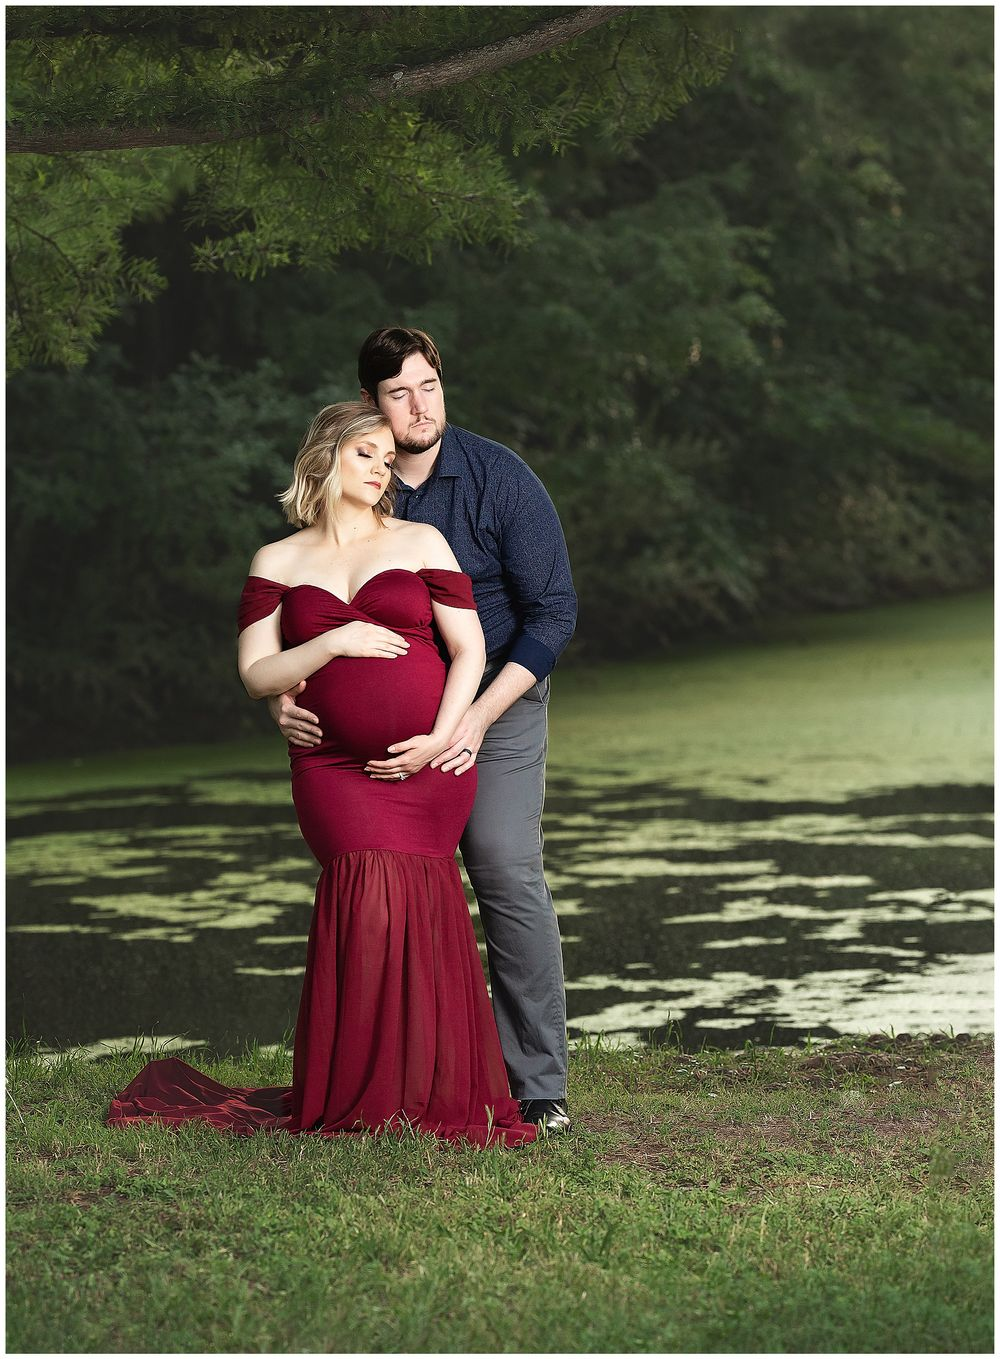 Austin Newborn Photography Maternity Portrait Modern maternity outdoor by pond wine monroe gown